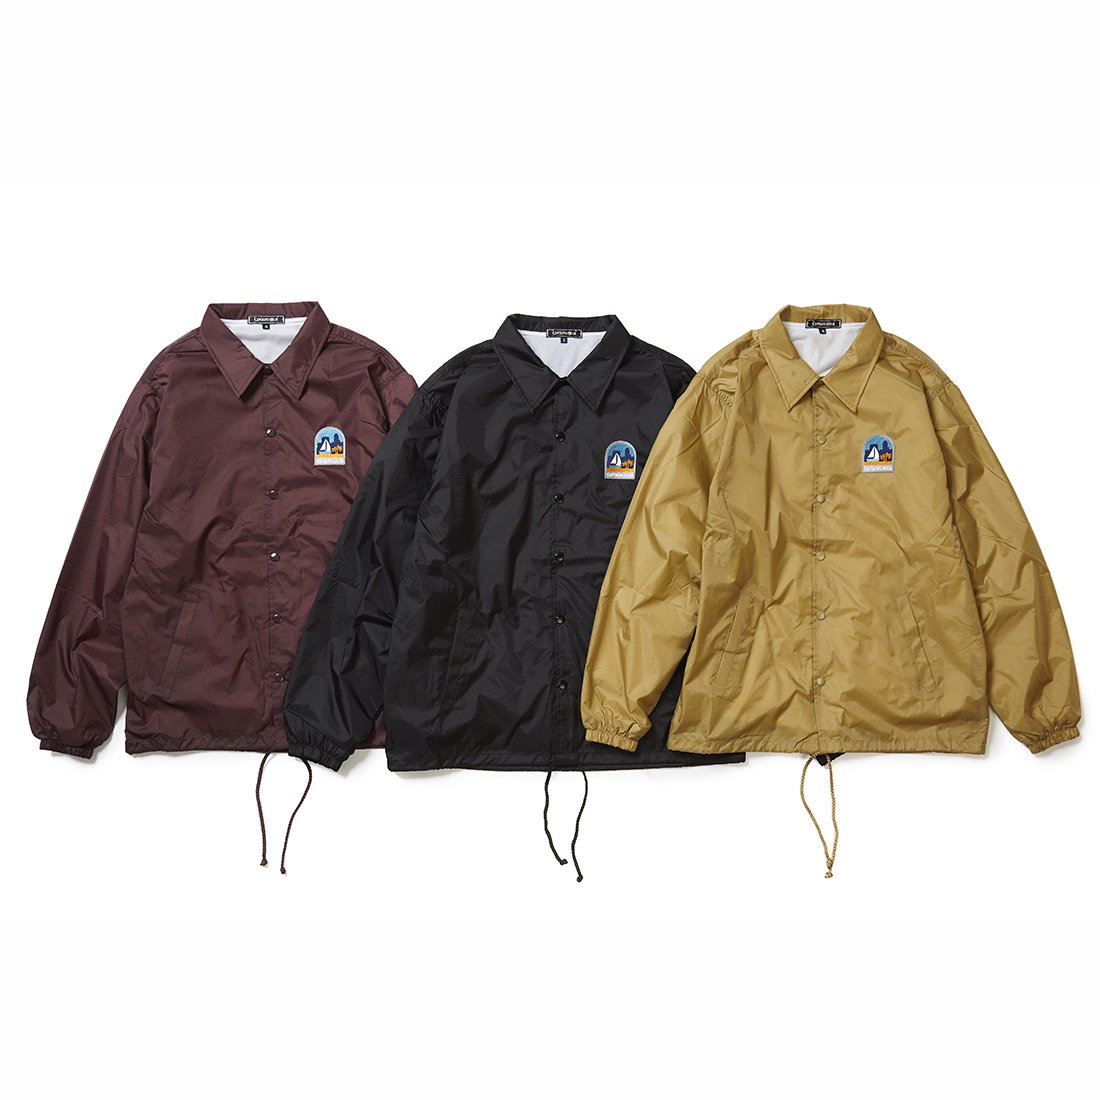 CAPTAINS HELM #SAN DIEGO COACH JACKET